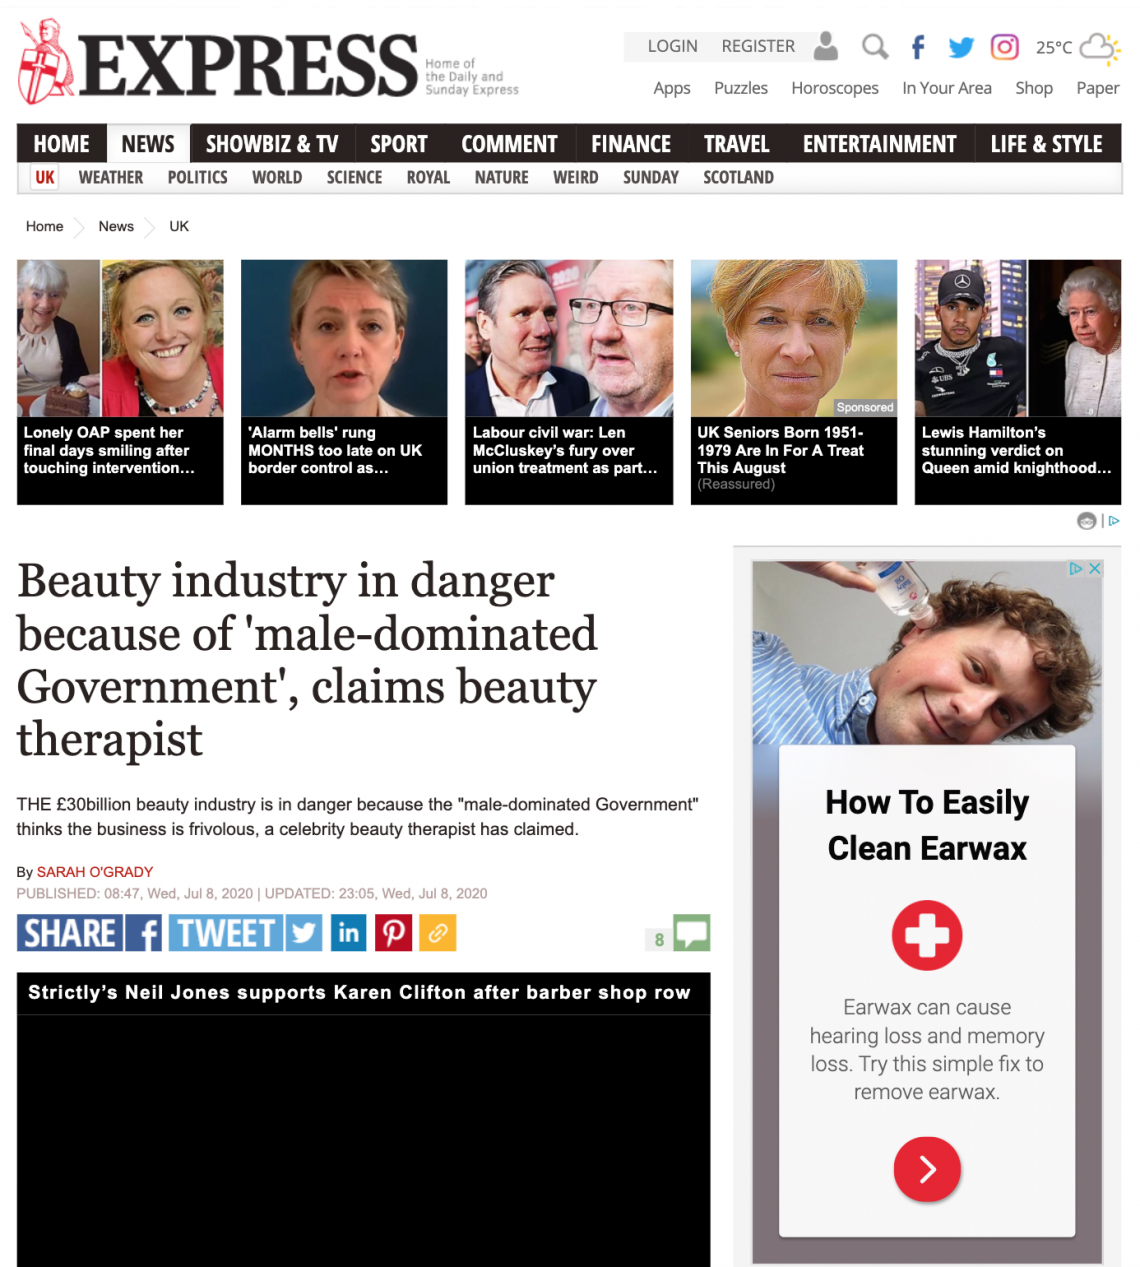 Daily Express Beauty Industry COVID-19